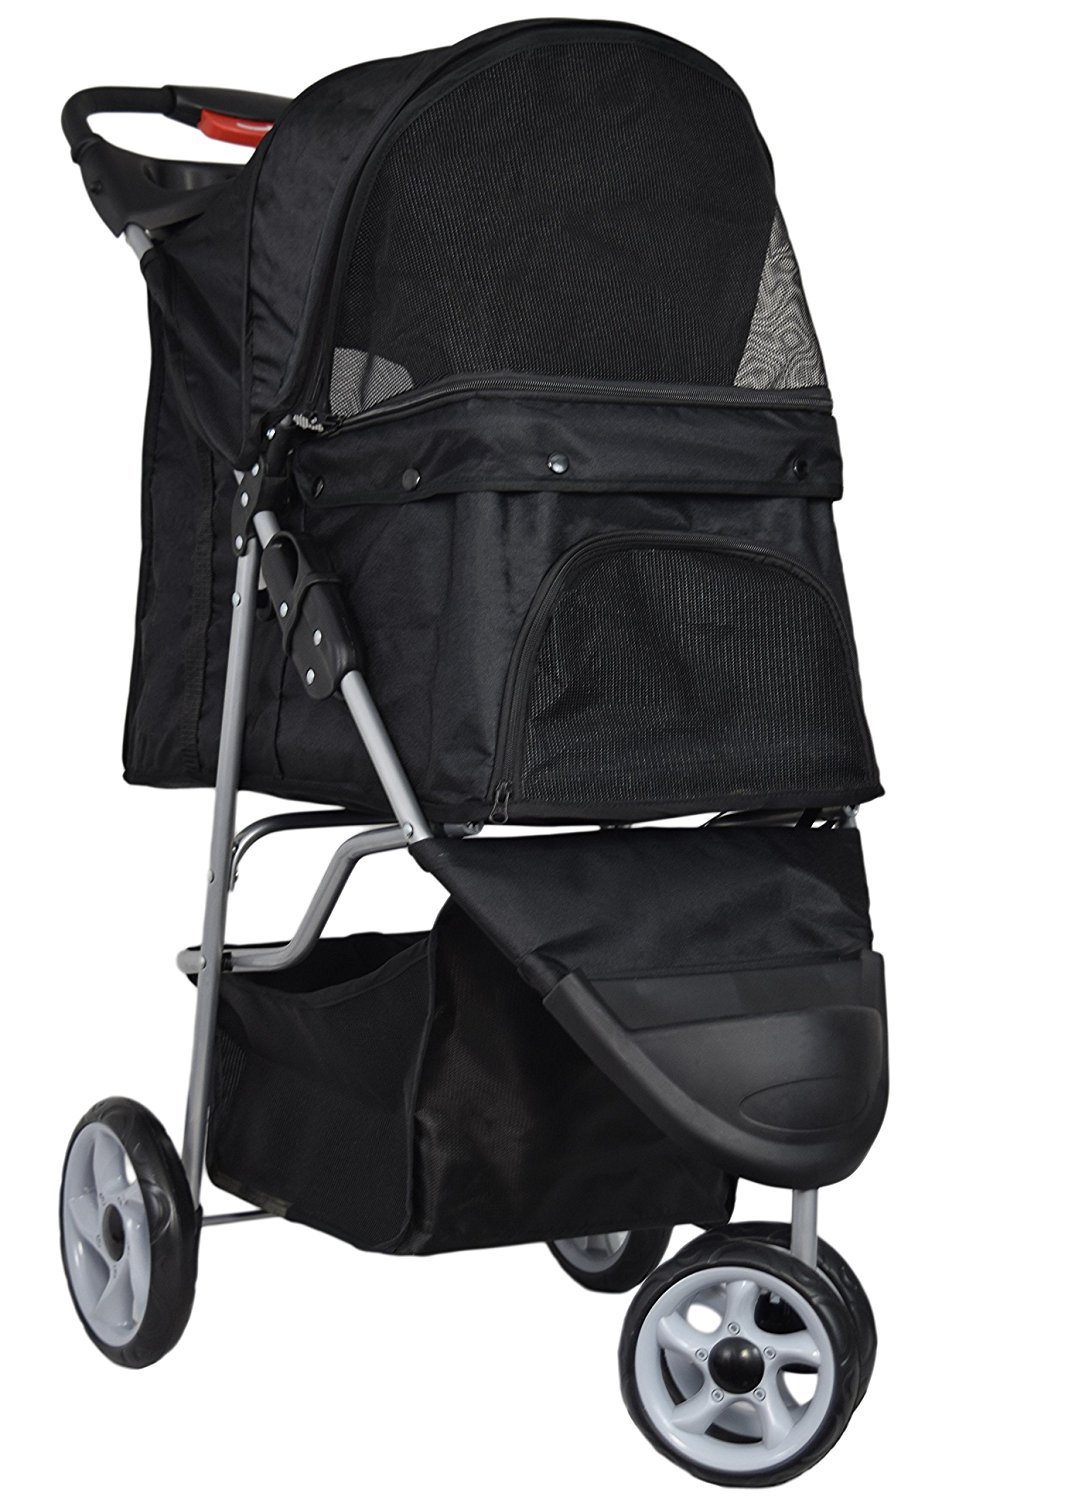 VIVO Three Wheel Pet Stroller for Cat Dog and More Foldable Carrier Strolling Cart Multiple colors (Black)